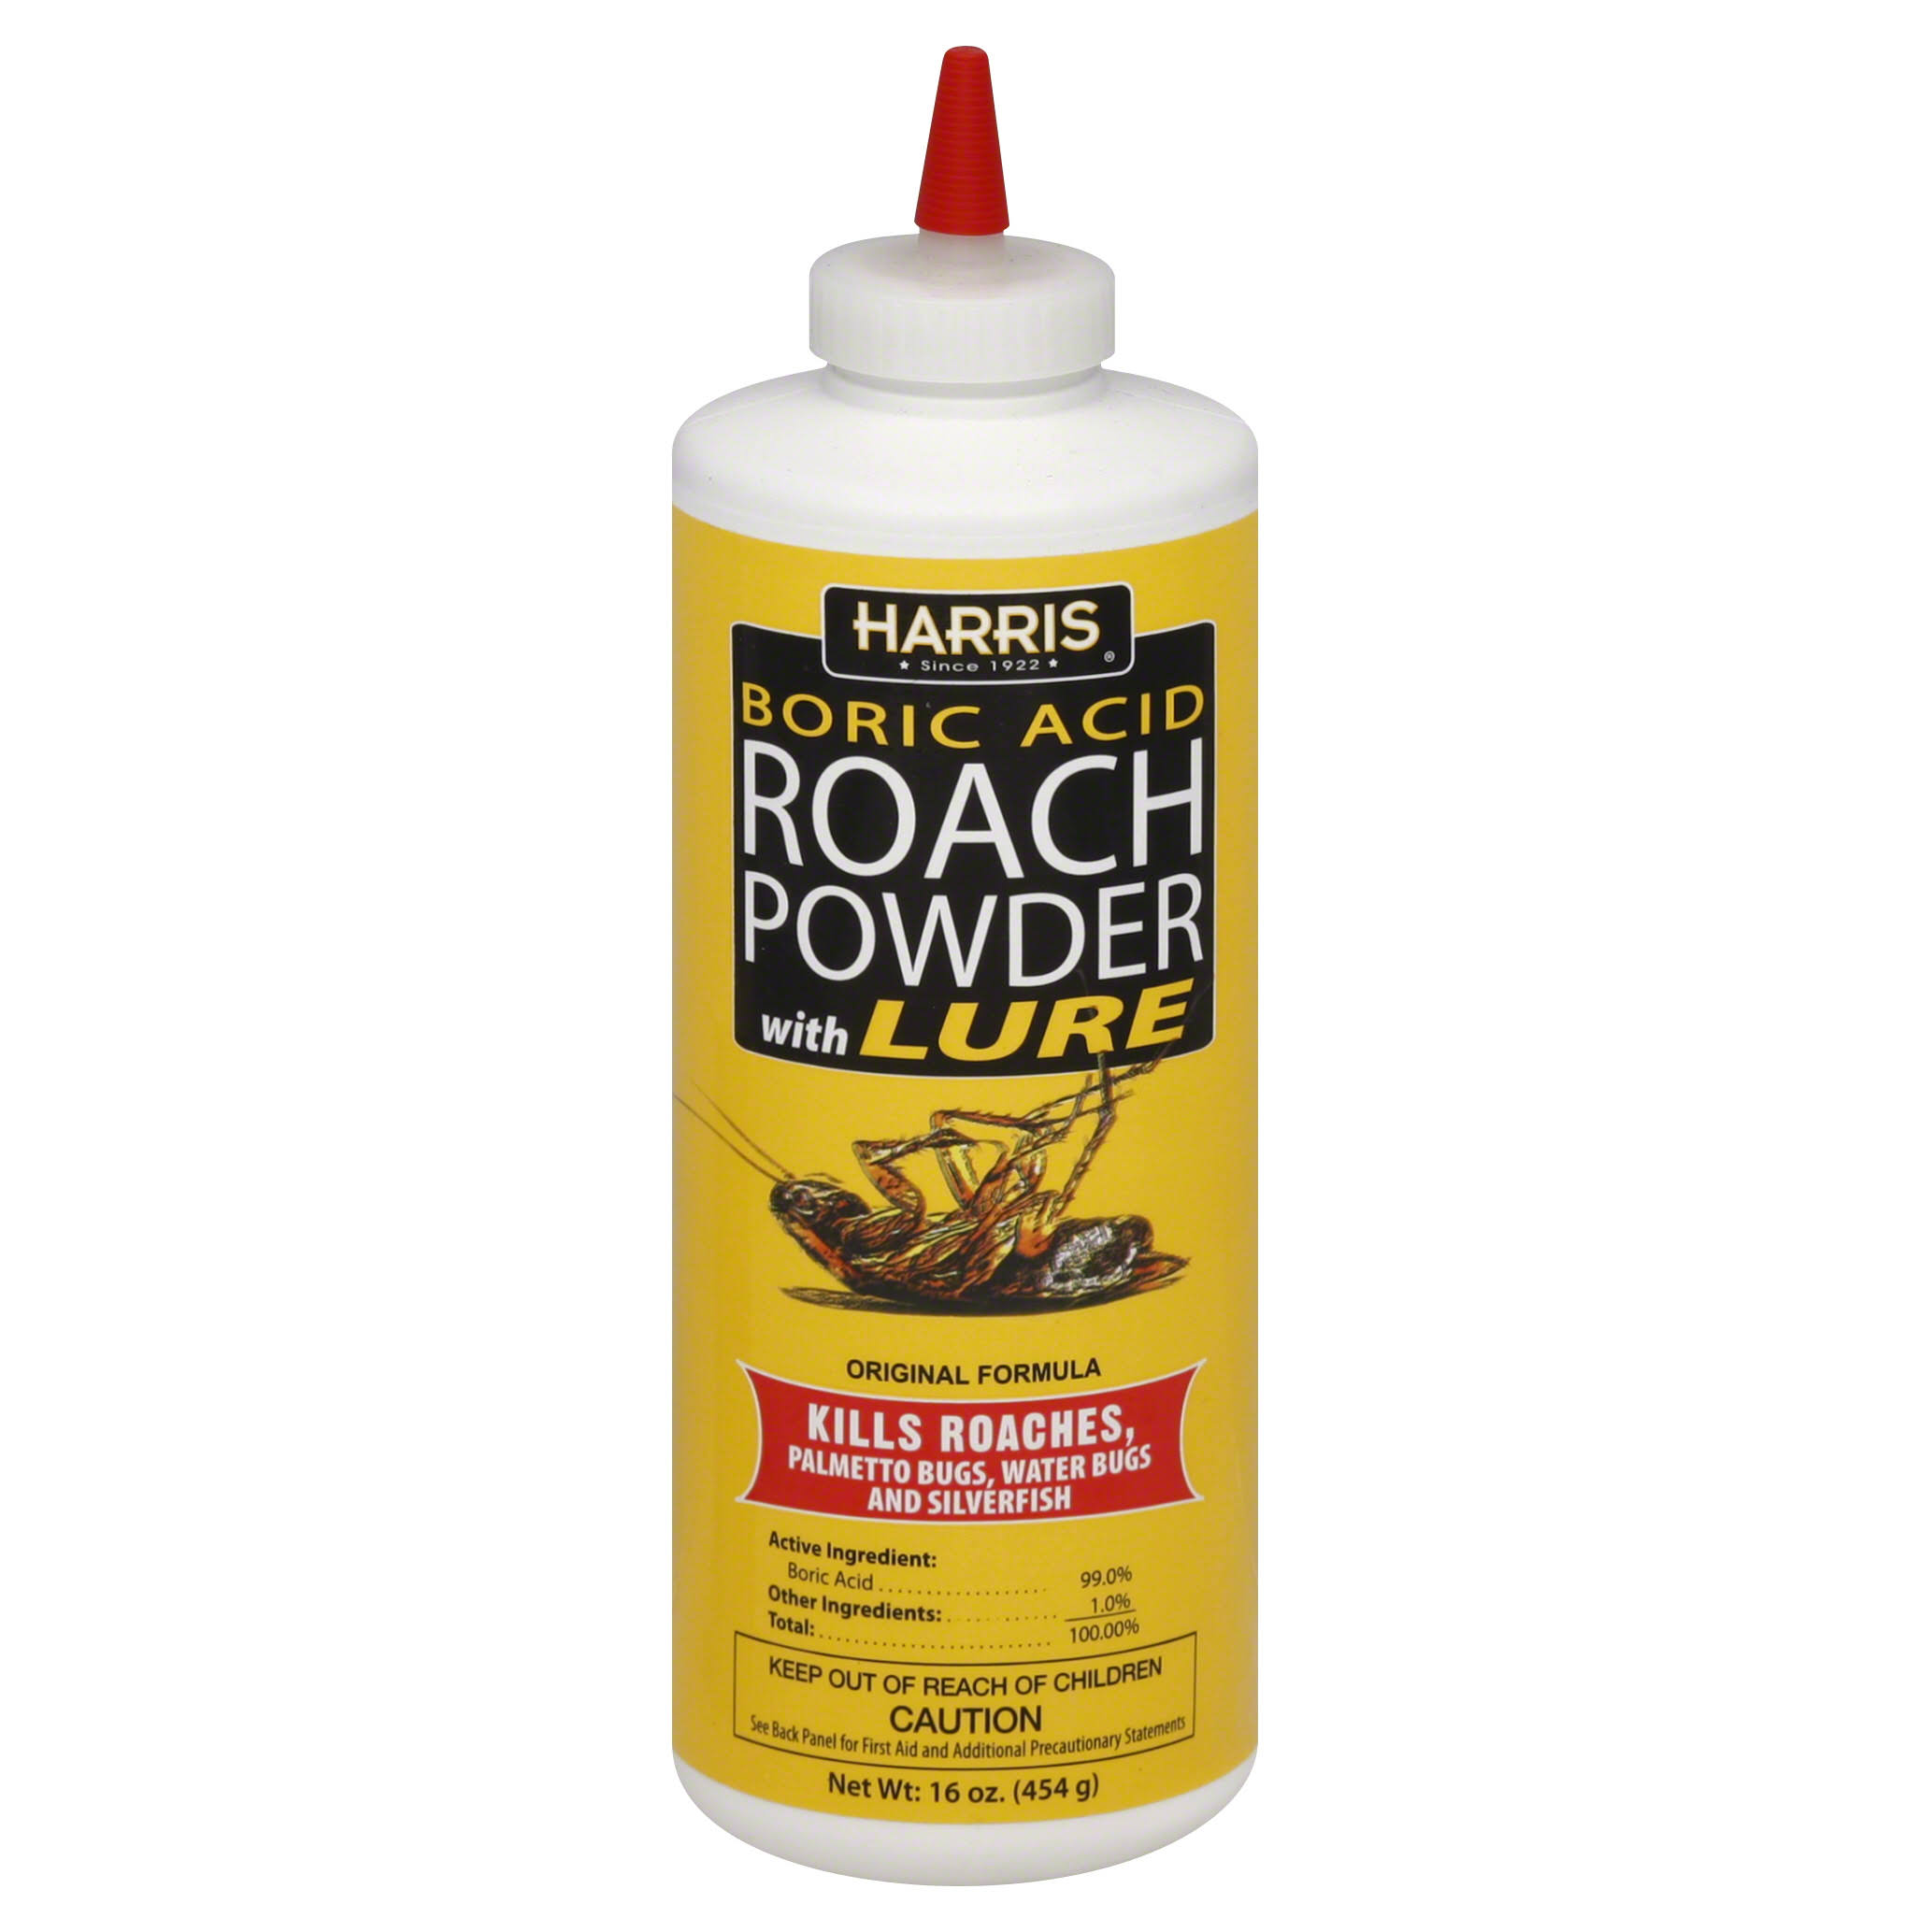 Harris Boric Acid Roach Powder Insect Killer - with Lure, 16oz